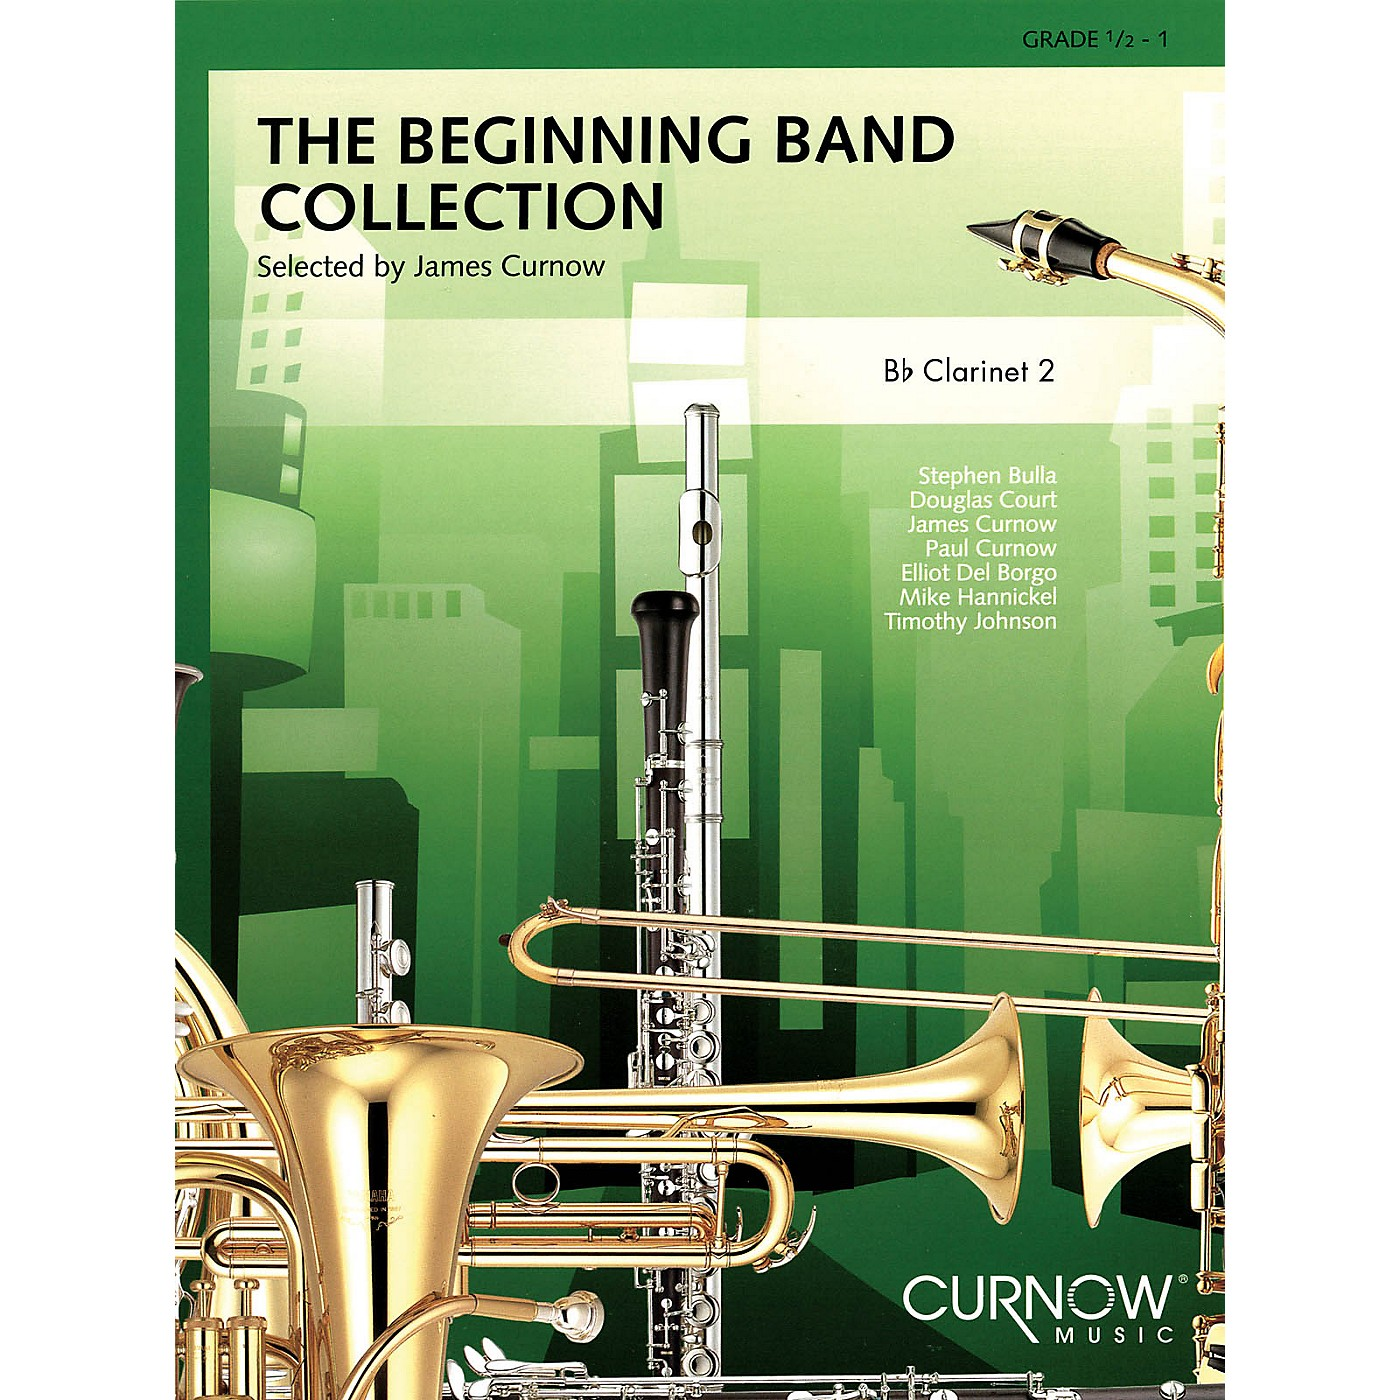 Curnow Music The Beginning Band Collection (Grade 0.5) (Bb Clarinet 2) Concert Band Level .5 to 1 by James Curnow thumbnail